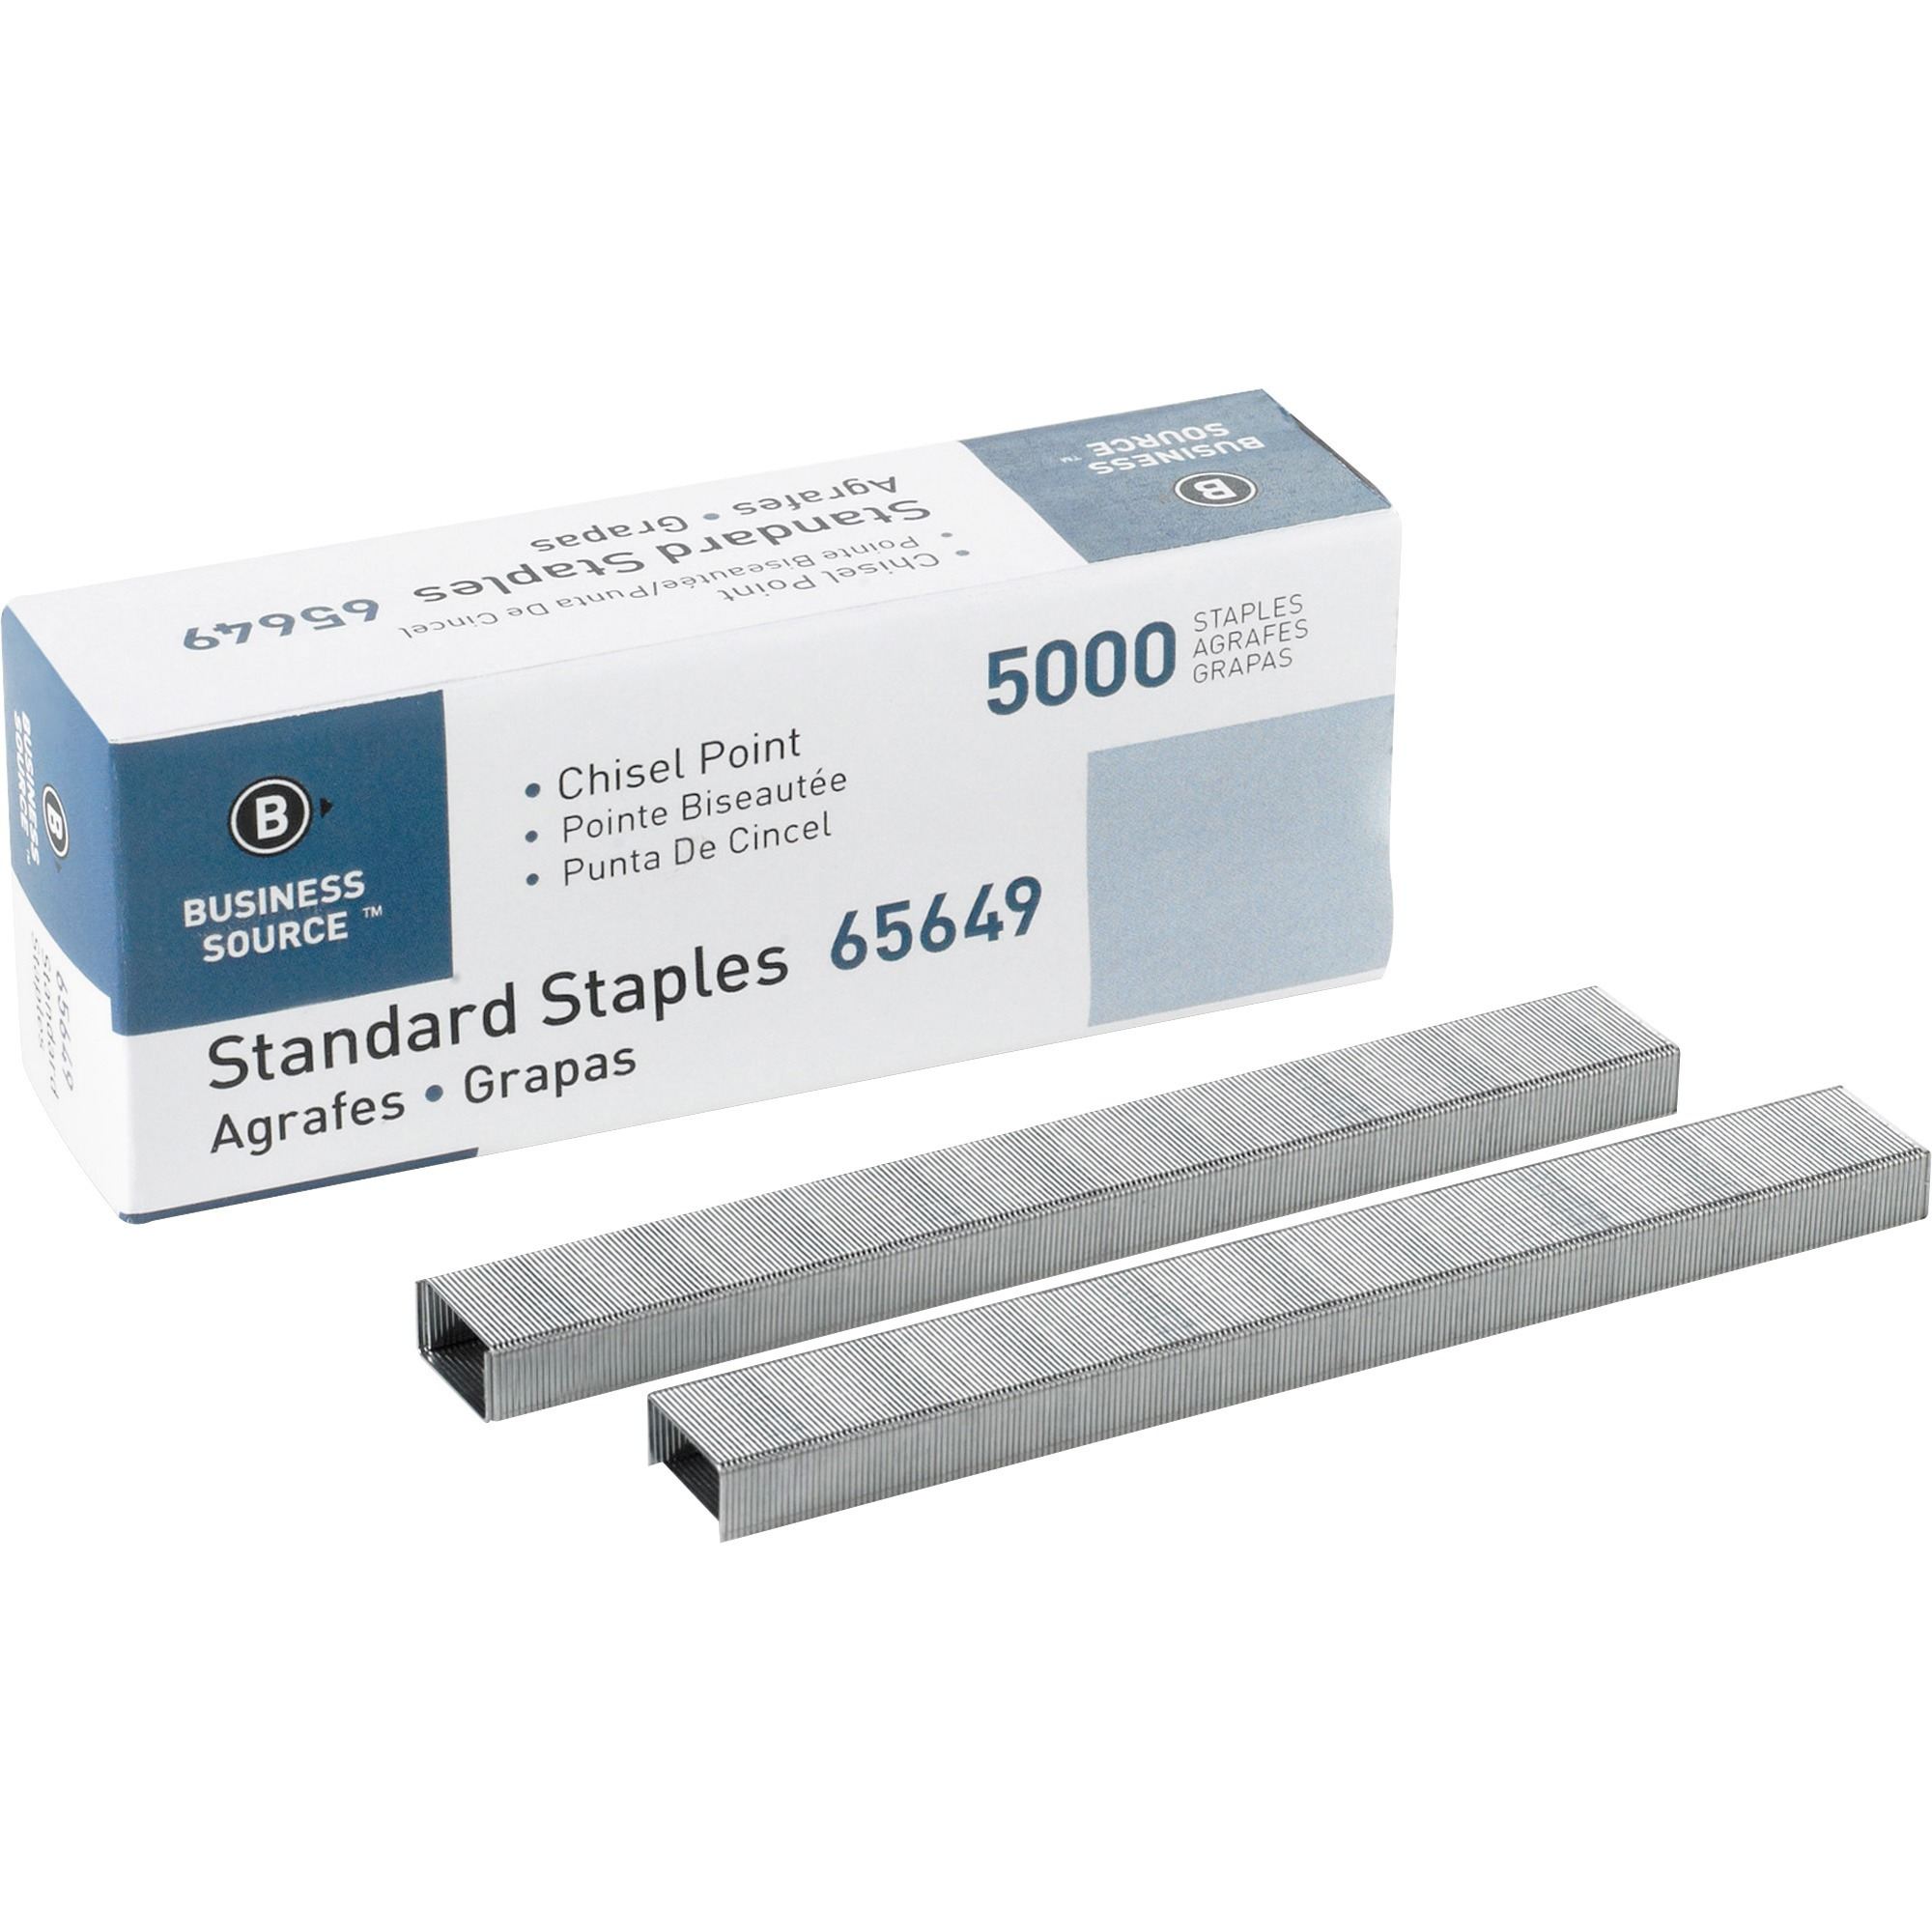 Business Source, BSN65649, Chisel Point Standard Staples, 1 Box, Silver